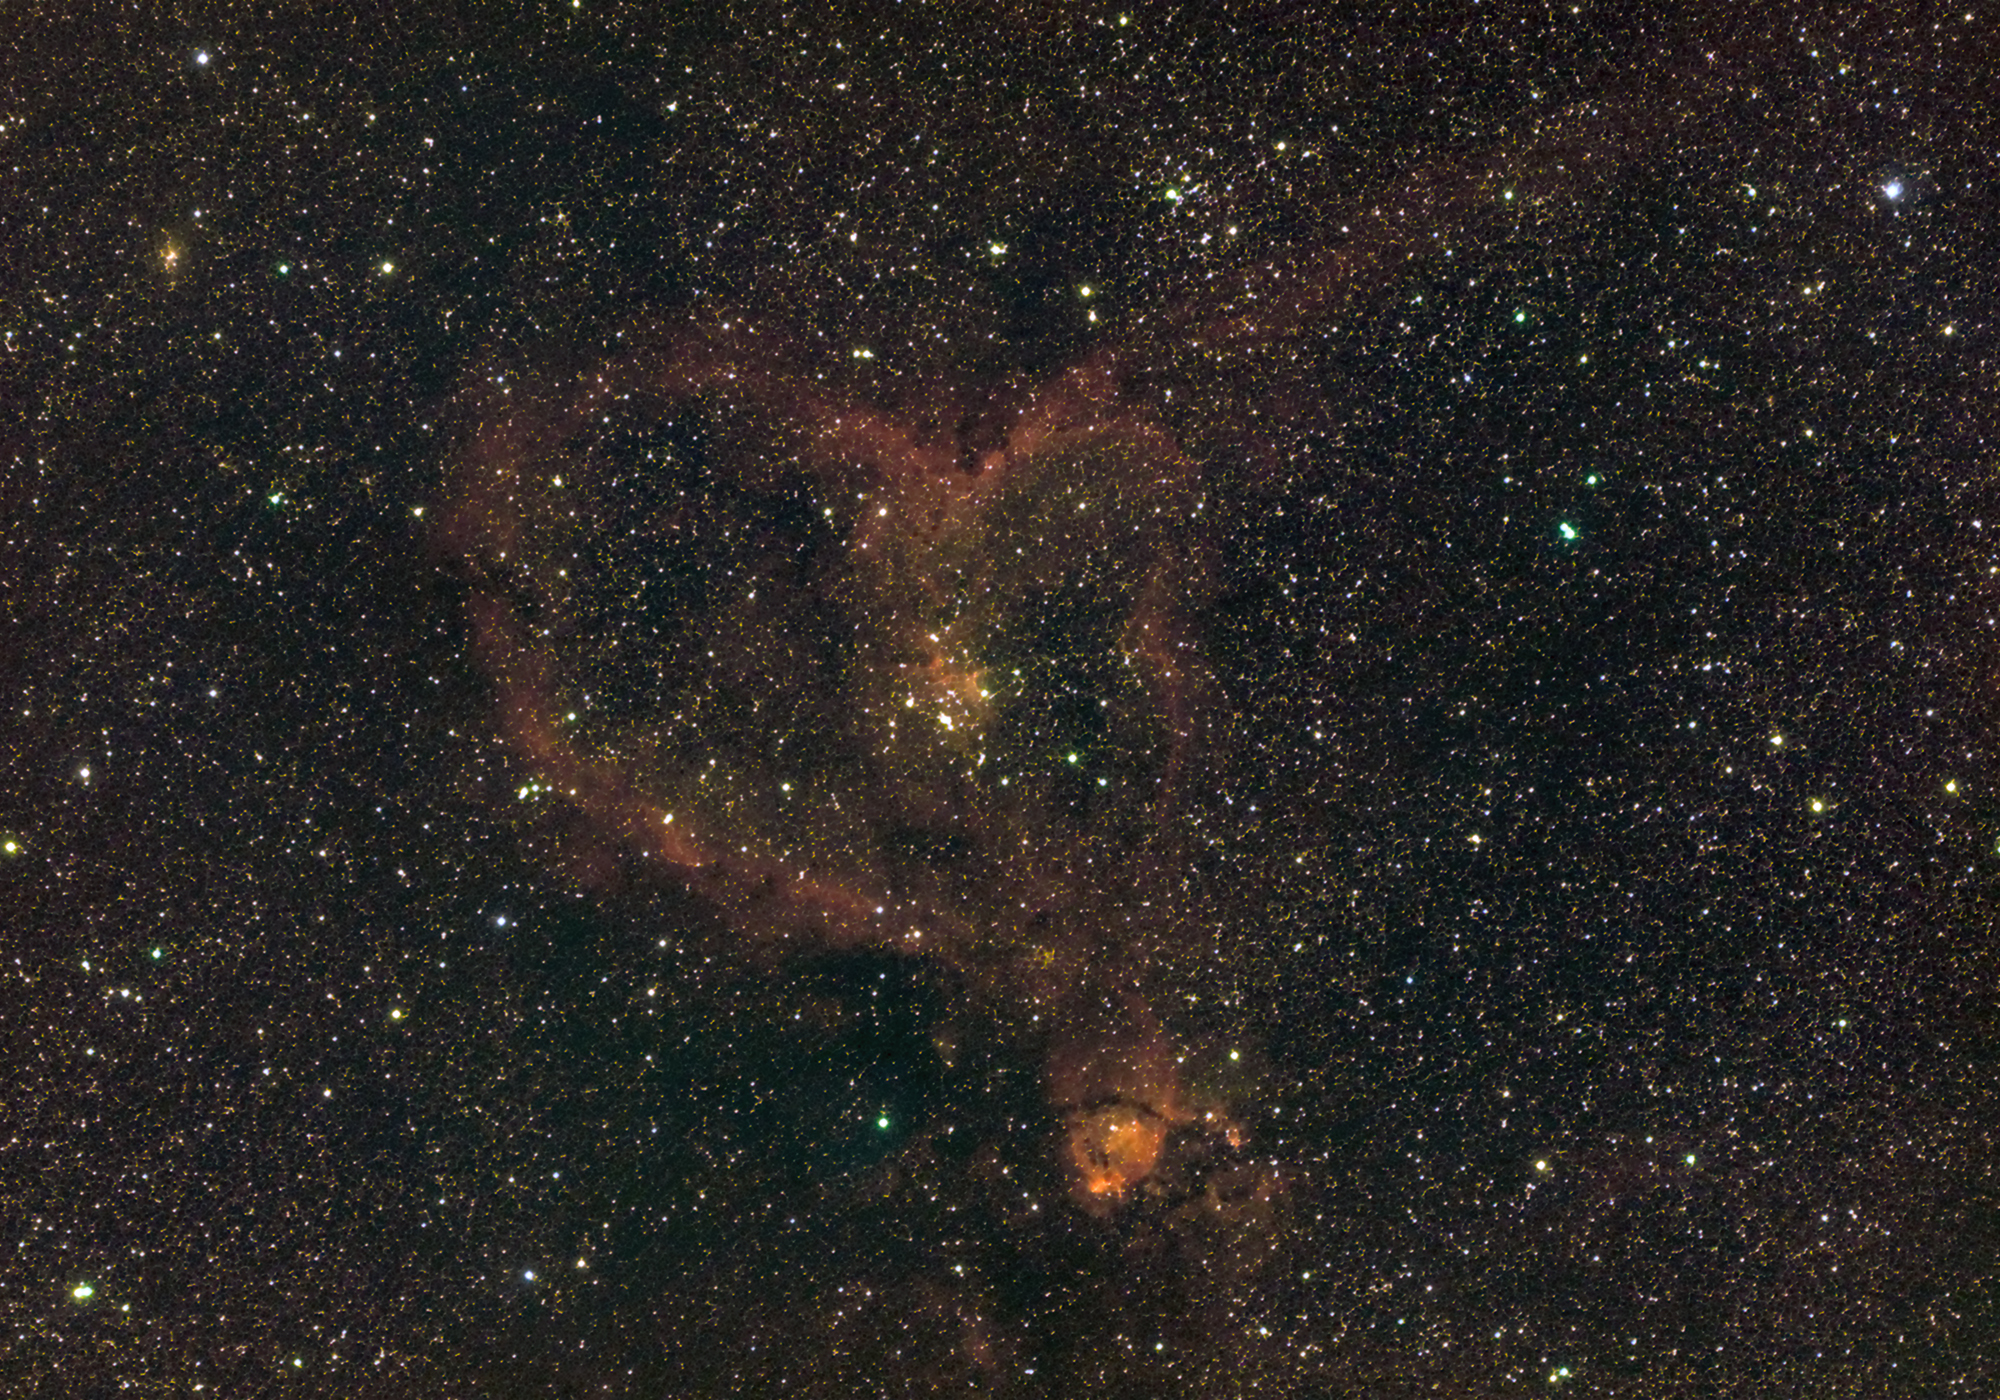 The Heart Nebula NGC 1795